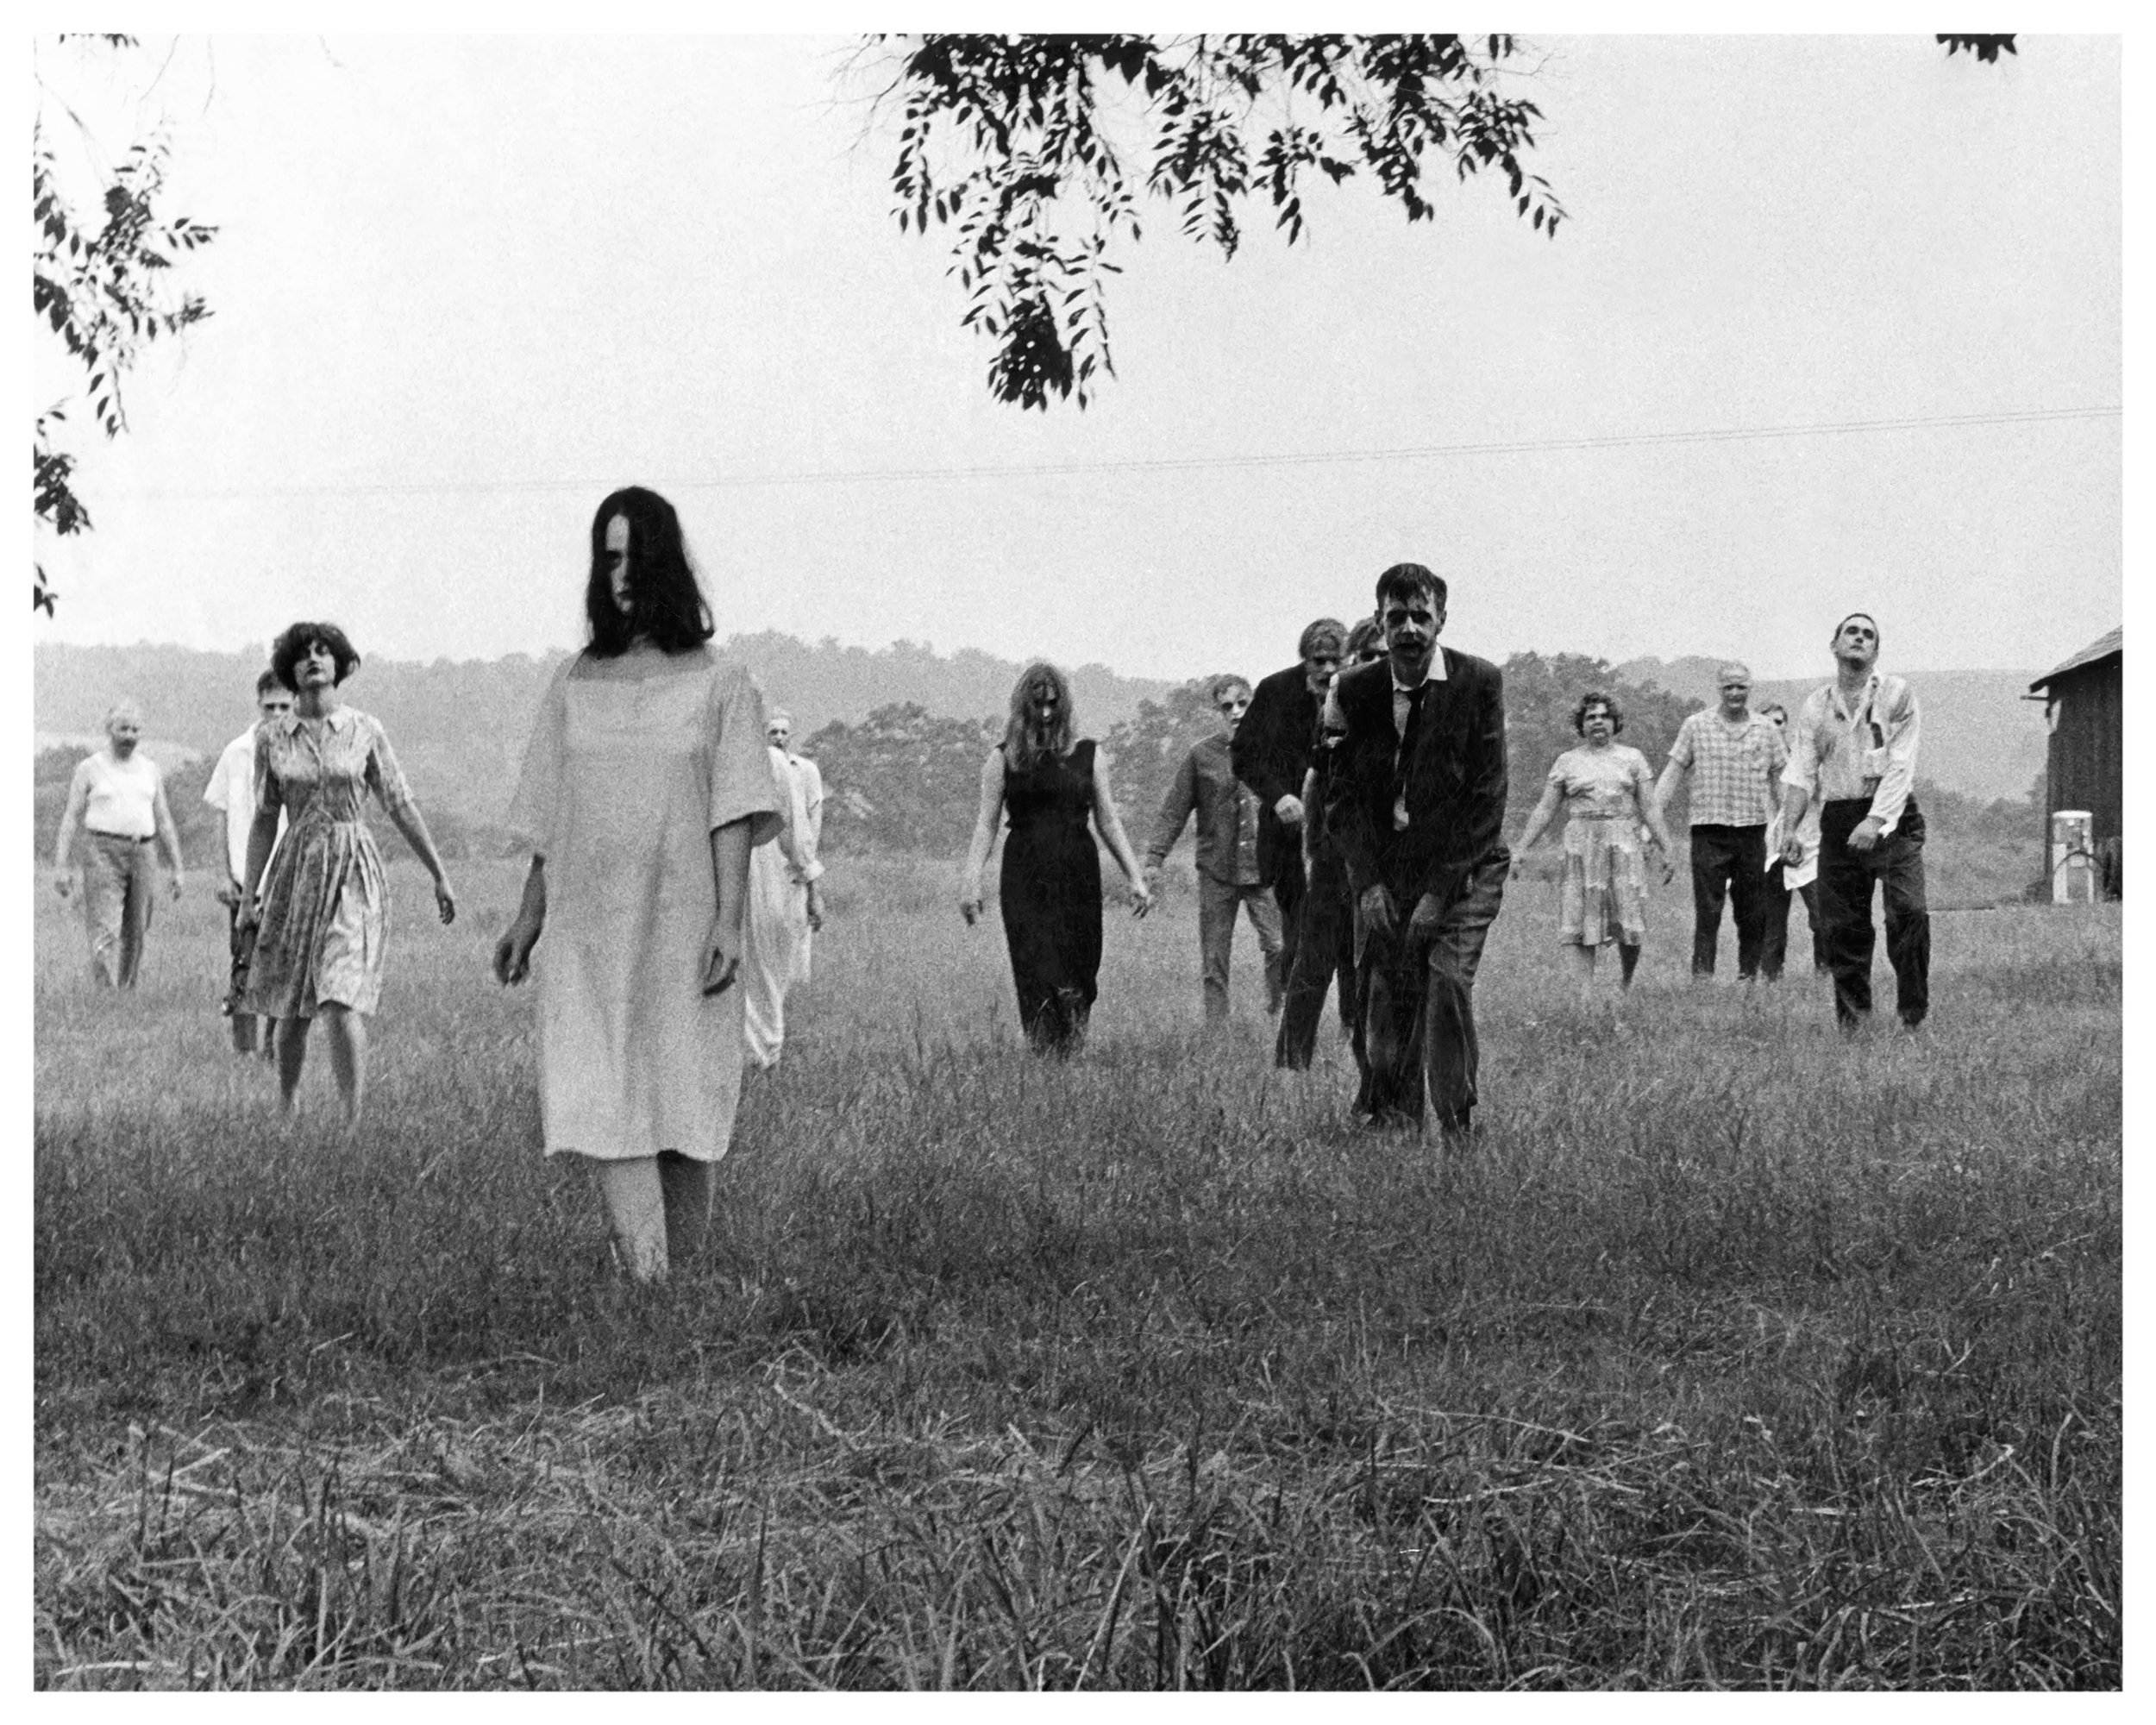 ND-14 ghouls in field.jpg